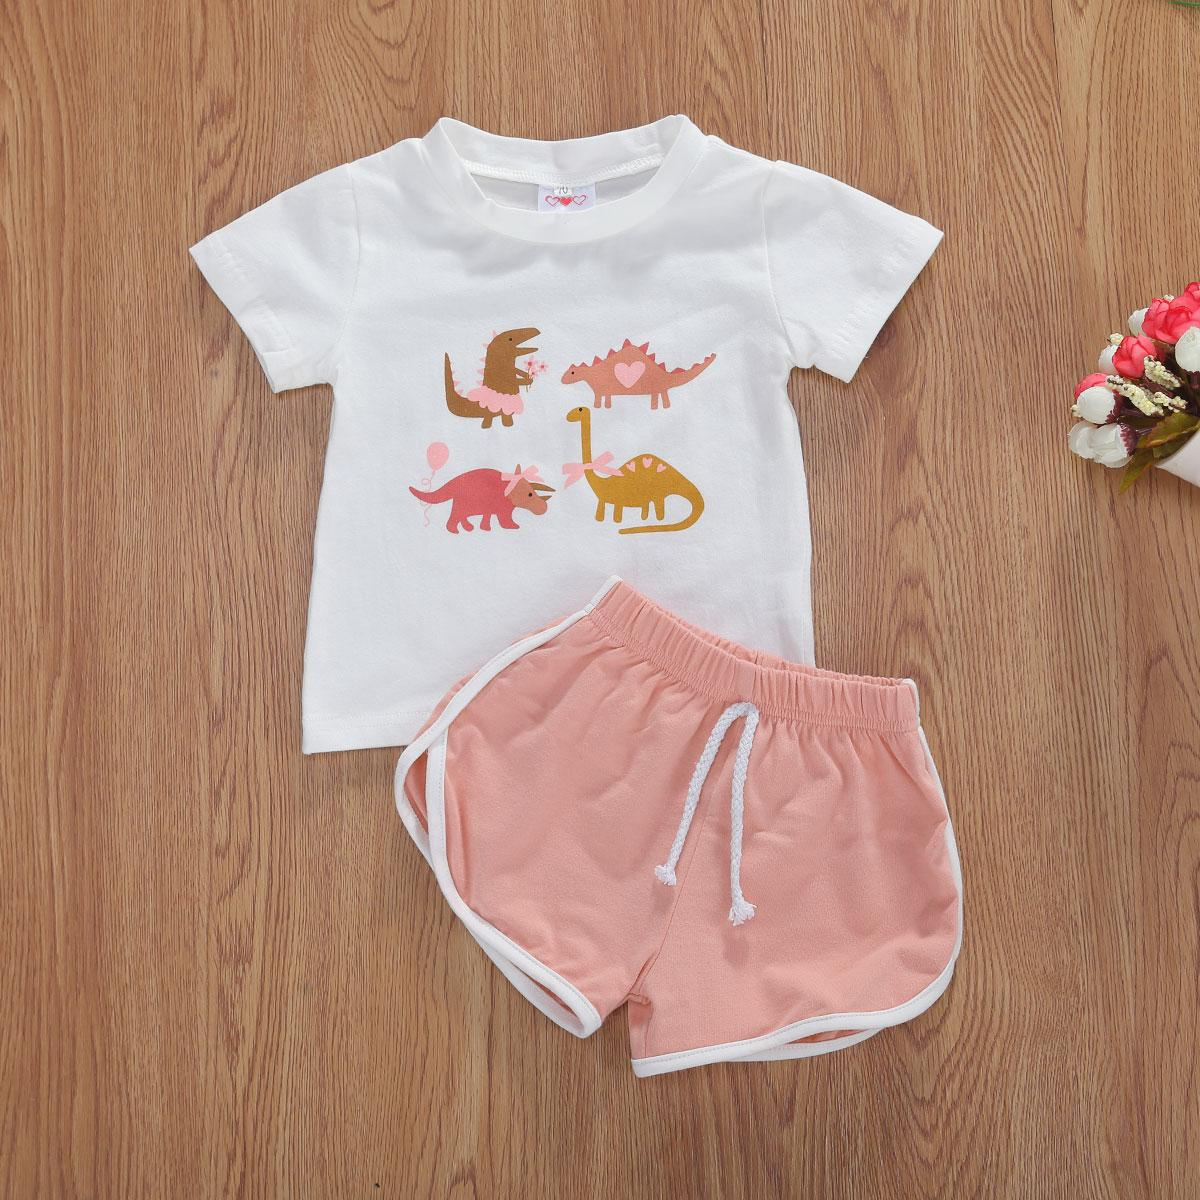 0-4Y Summer Kids Baby Girls Lovely Clothes Sets Animal Print Short Sleeve T Shirts Solid Shorts 2pcs